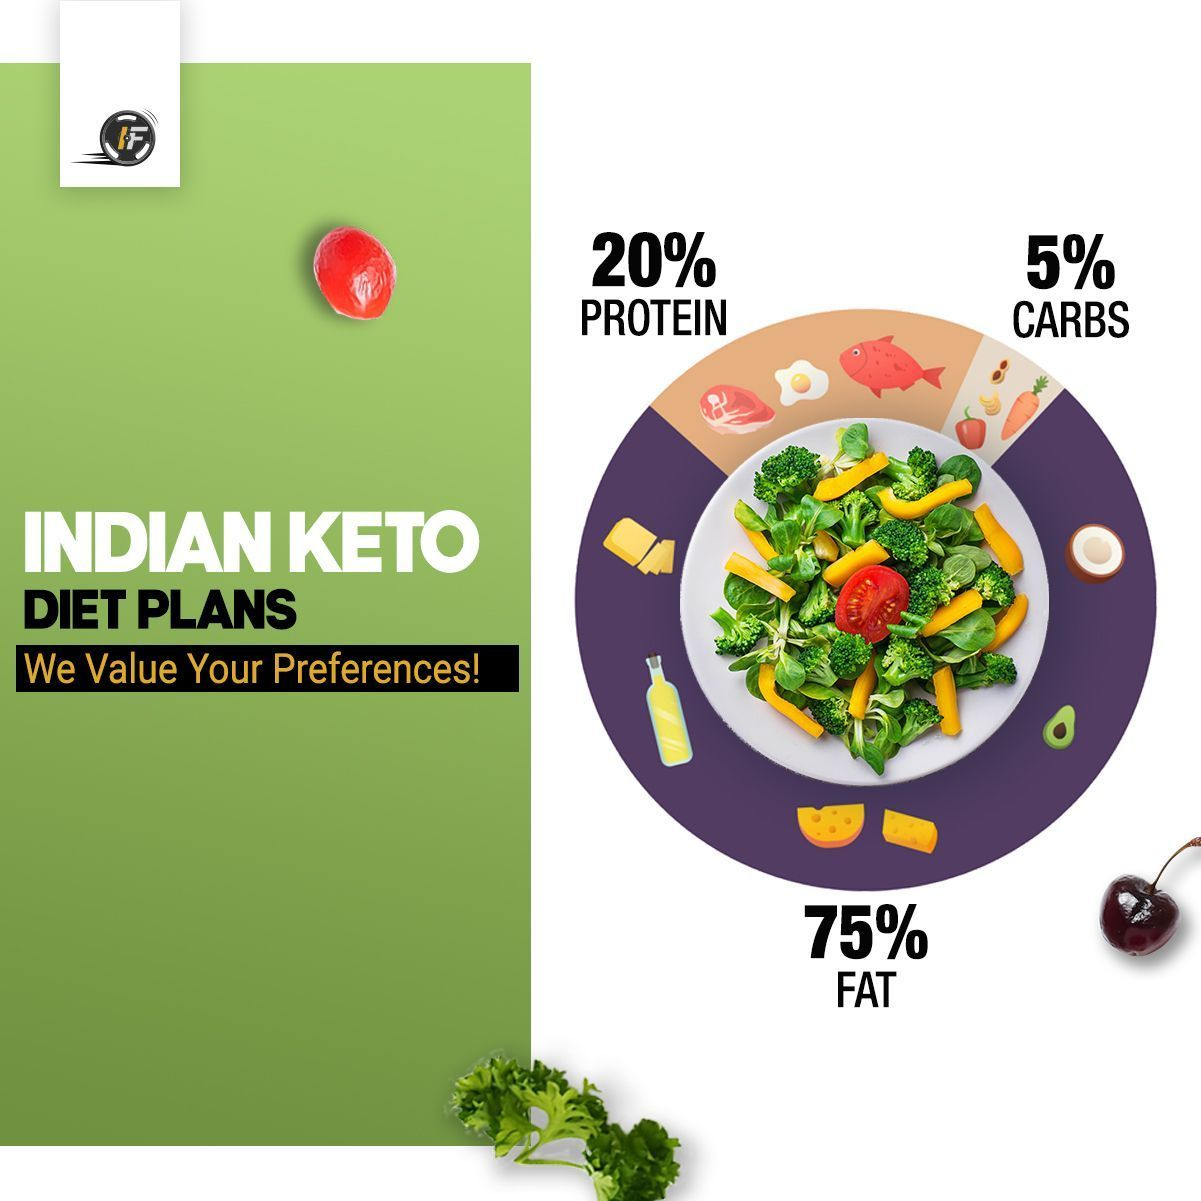 Your Search for COMPLETELY INDIAN KETO Diet Plans ENDS Here! We make KETO Easy for Everyone. Schedul...